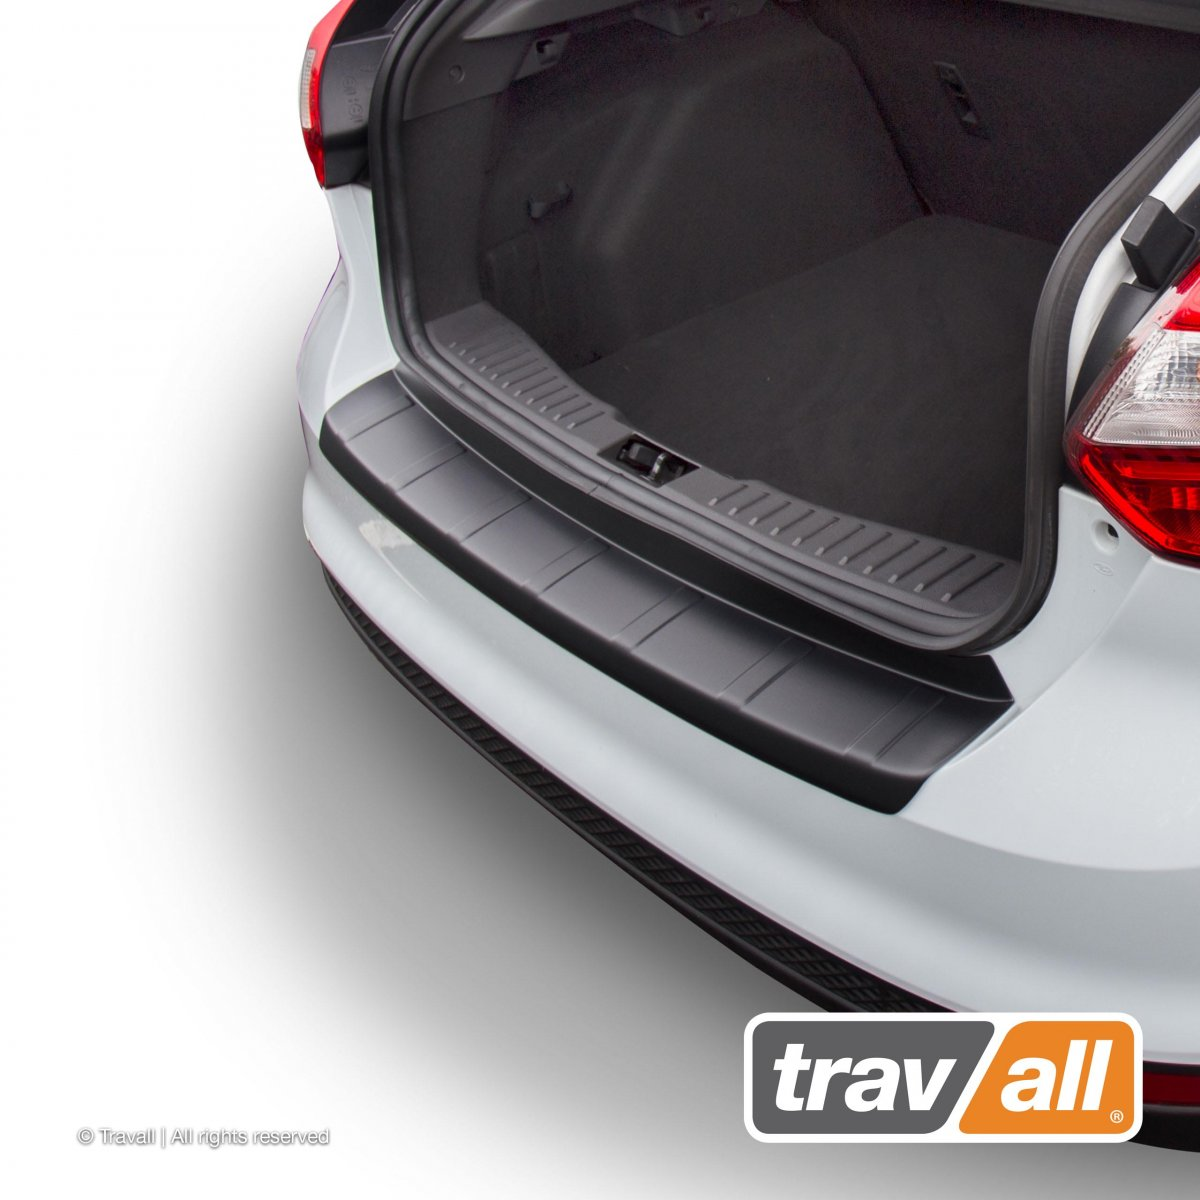 Travall® PROTECTOR-Plastic Ridged for Ford Focus 5 Door Hatchback (2010-2014) / ST (2012-2014)